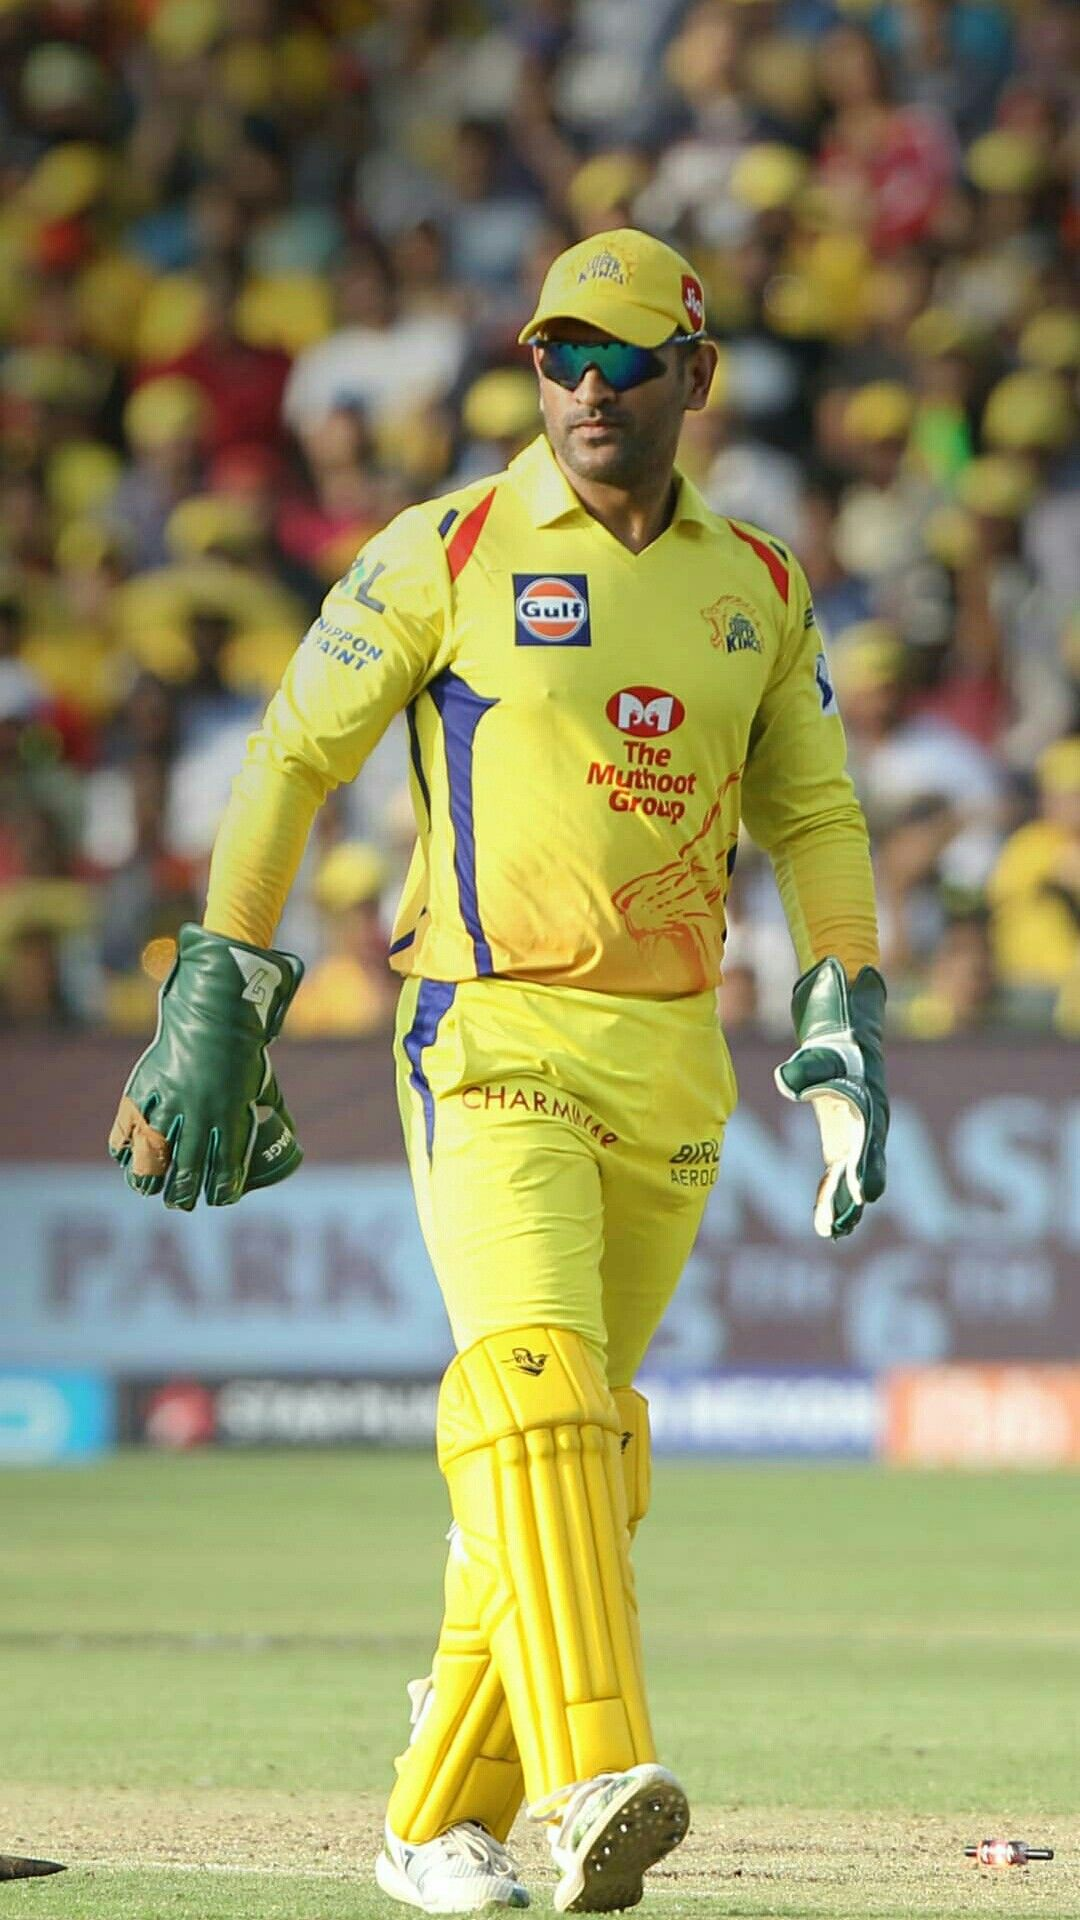 Pin By Srinivas On Msd Ms Dhoni Wallpapers Dhoni Wallpapers Cricket Wallpapers